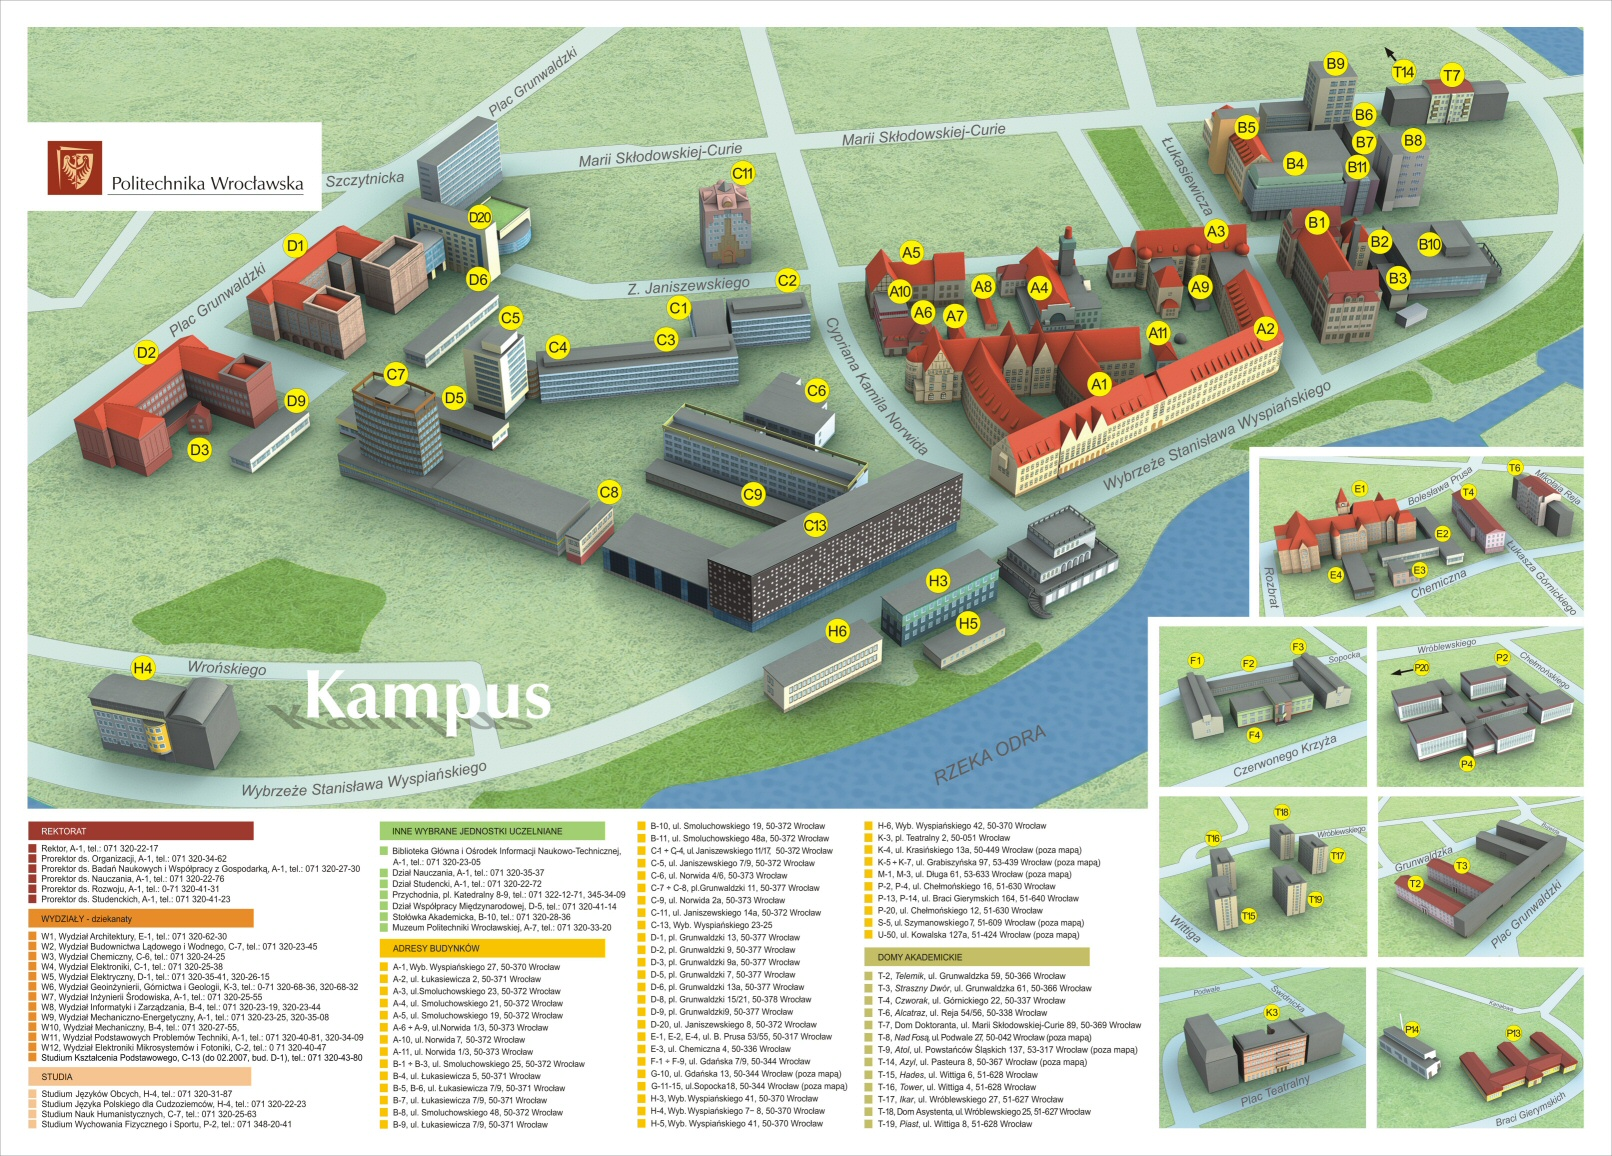 Wroclaw University of Technology Campus Map Wroclaw Poland • mappery